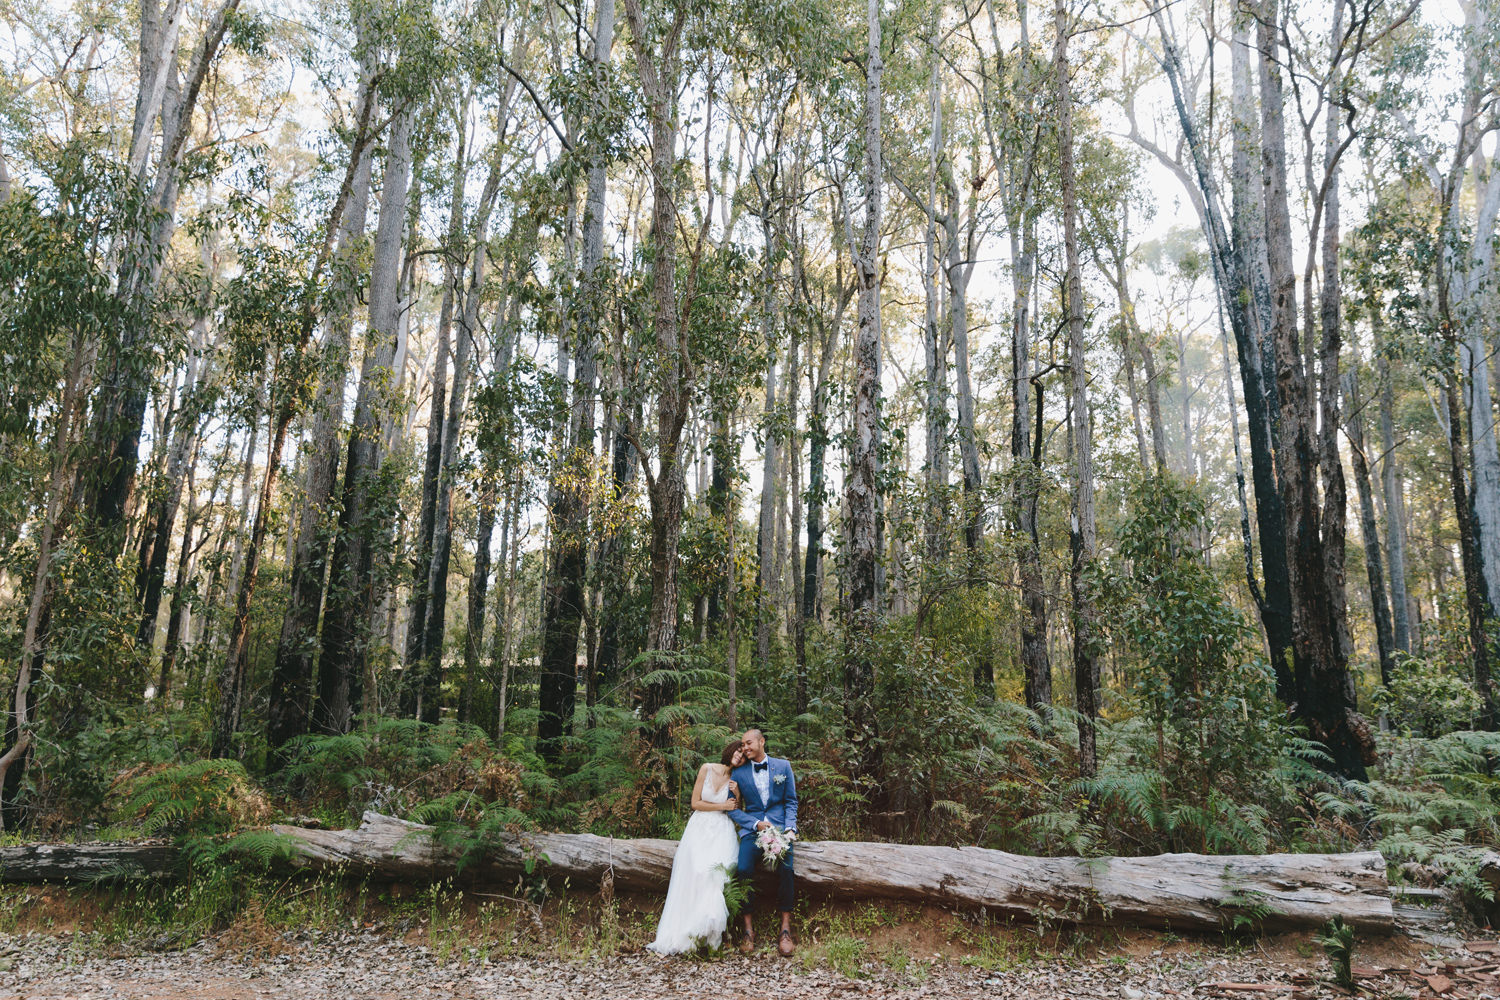 143-Barn_Wedding_Australia_Sam_Ting.jpg